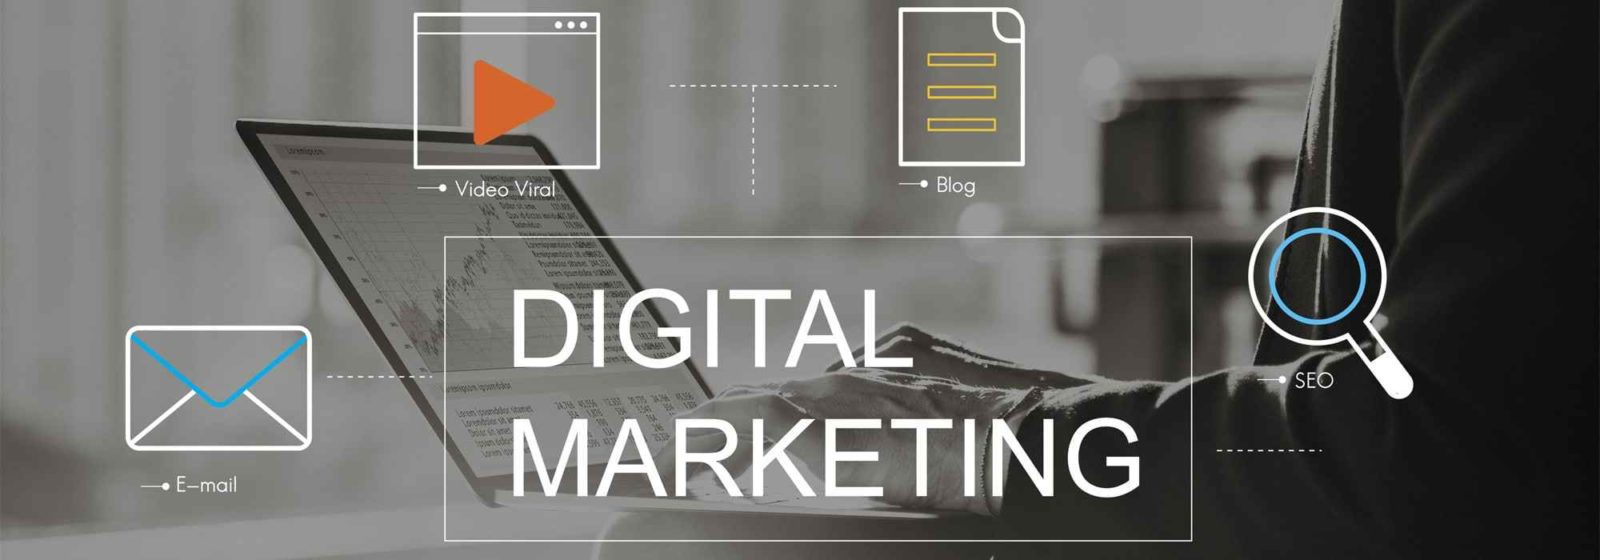 PLIVATE LI MOĆNIM VODAMA DIGITALNOG MARKETINGA? PLIVATE LI MOĆNIM VODAMA DIGITALNOG MARKETINGA? Digitalni marketing Sitework 5